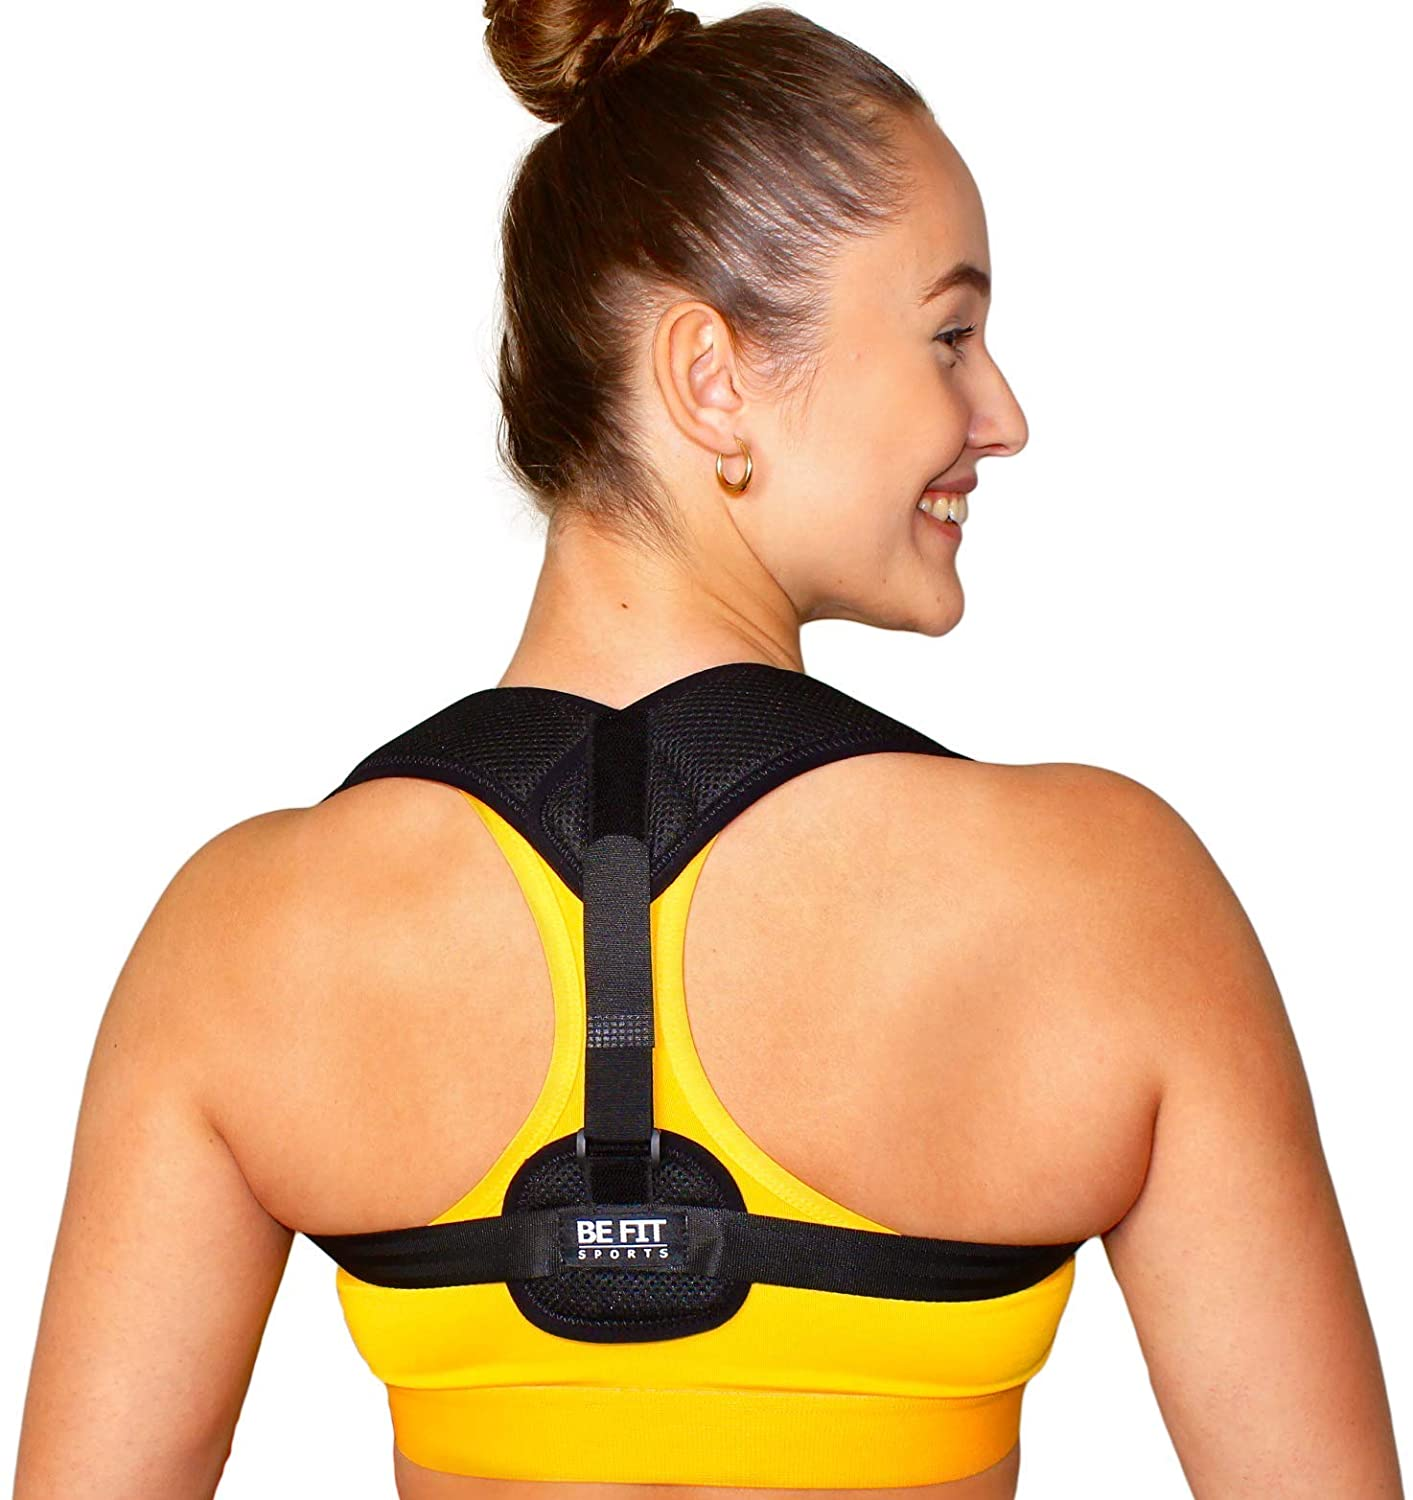 The BEST Posture Corrector for Men and Women, Adjustable Back Support Brace, Washable - Helps Relieve Back Pain and Neck Pain